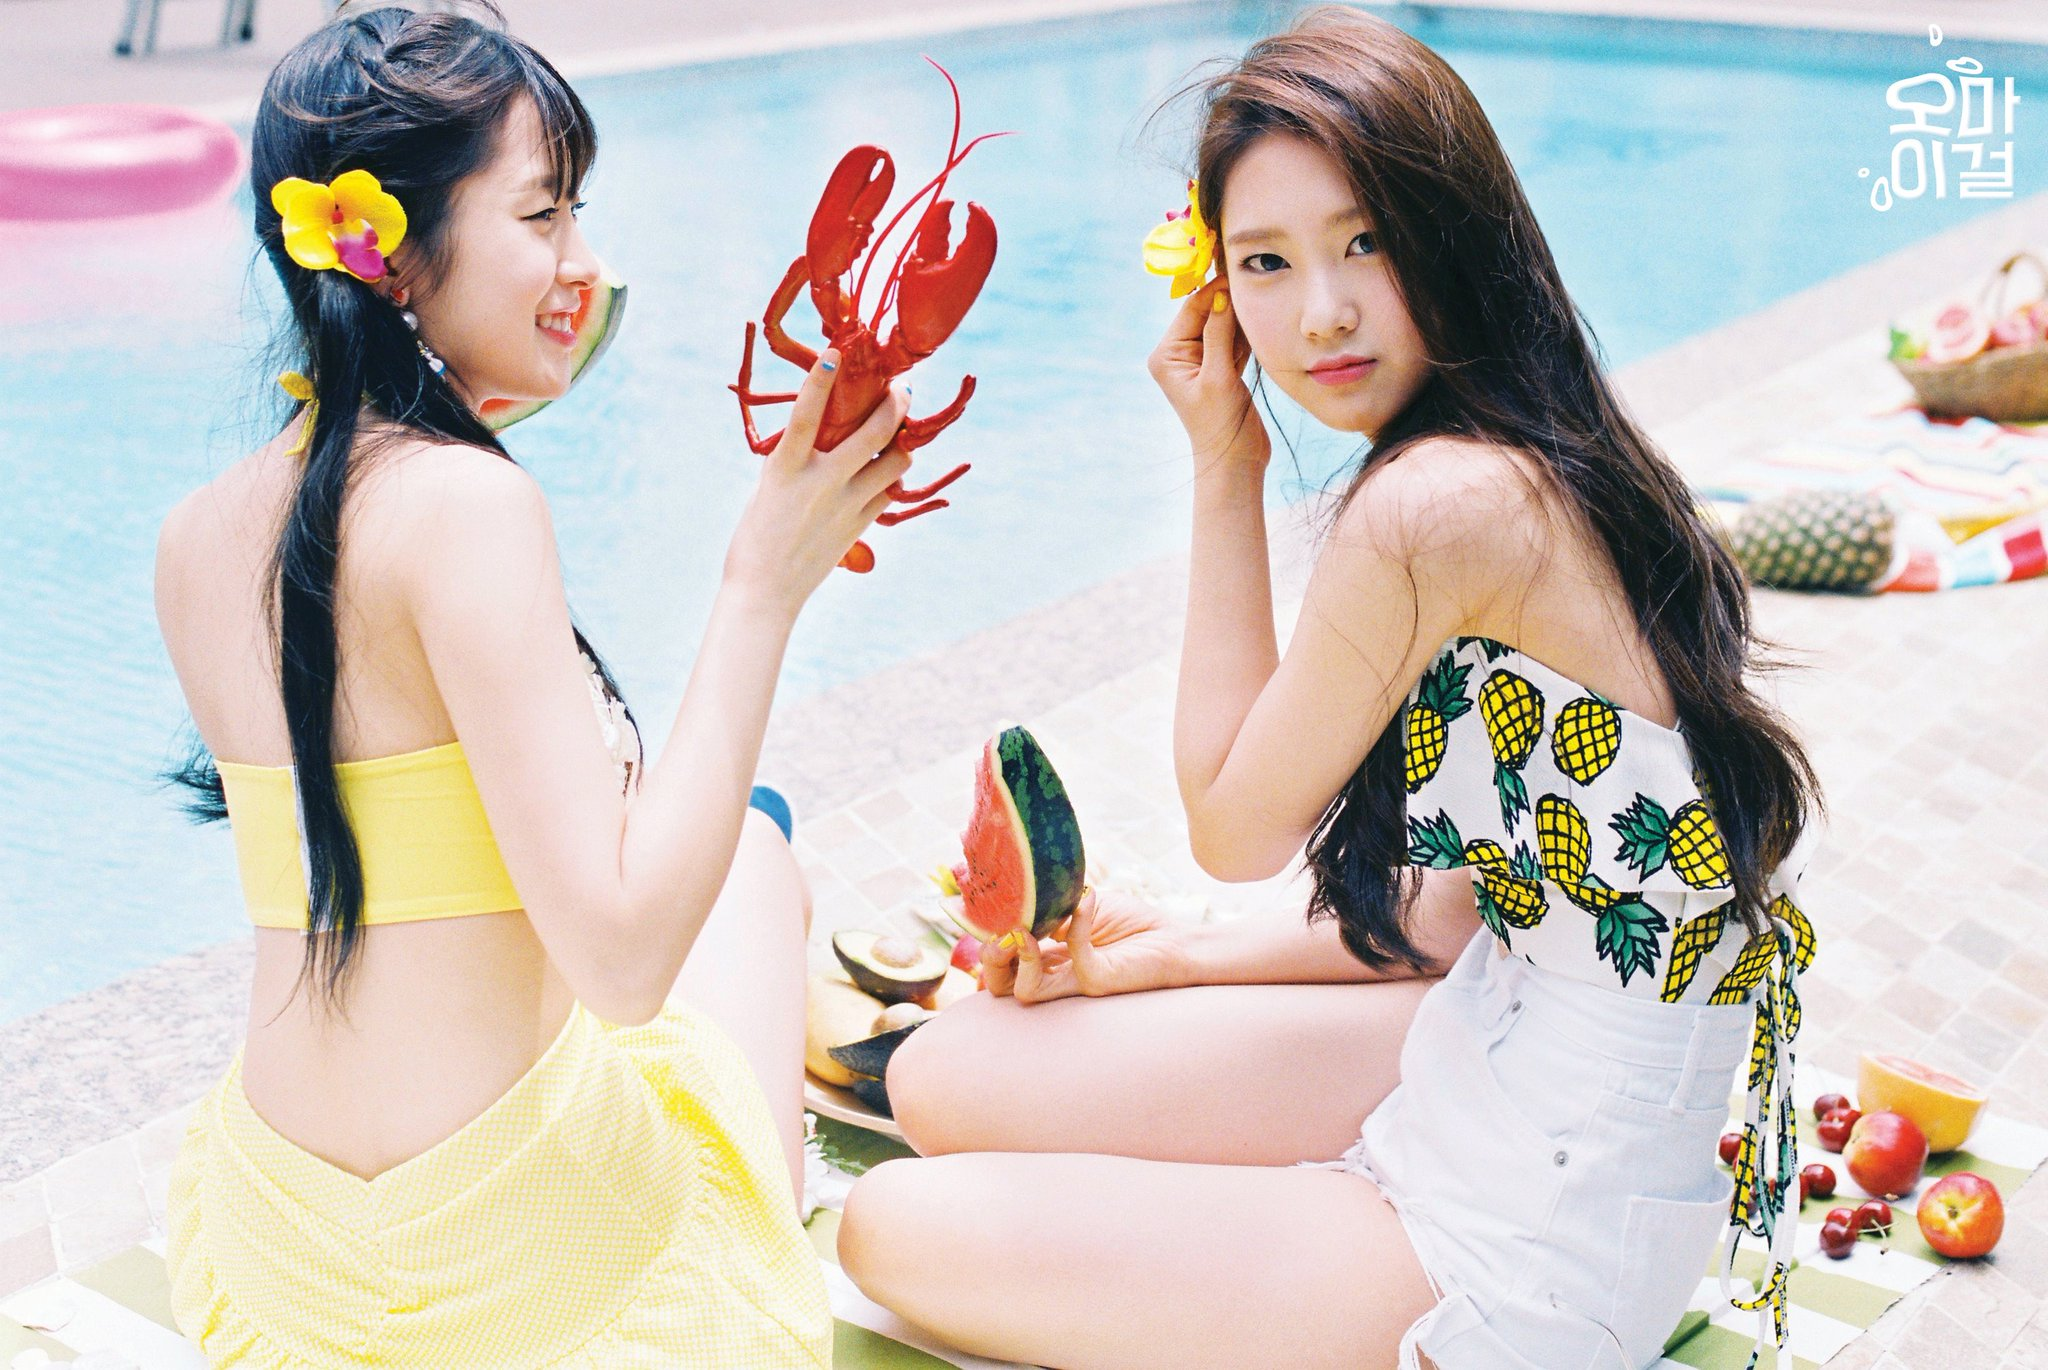 Update: Oh My Girl Has Fun In The Sun In Teaser Images For Summer Comeback